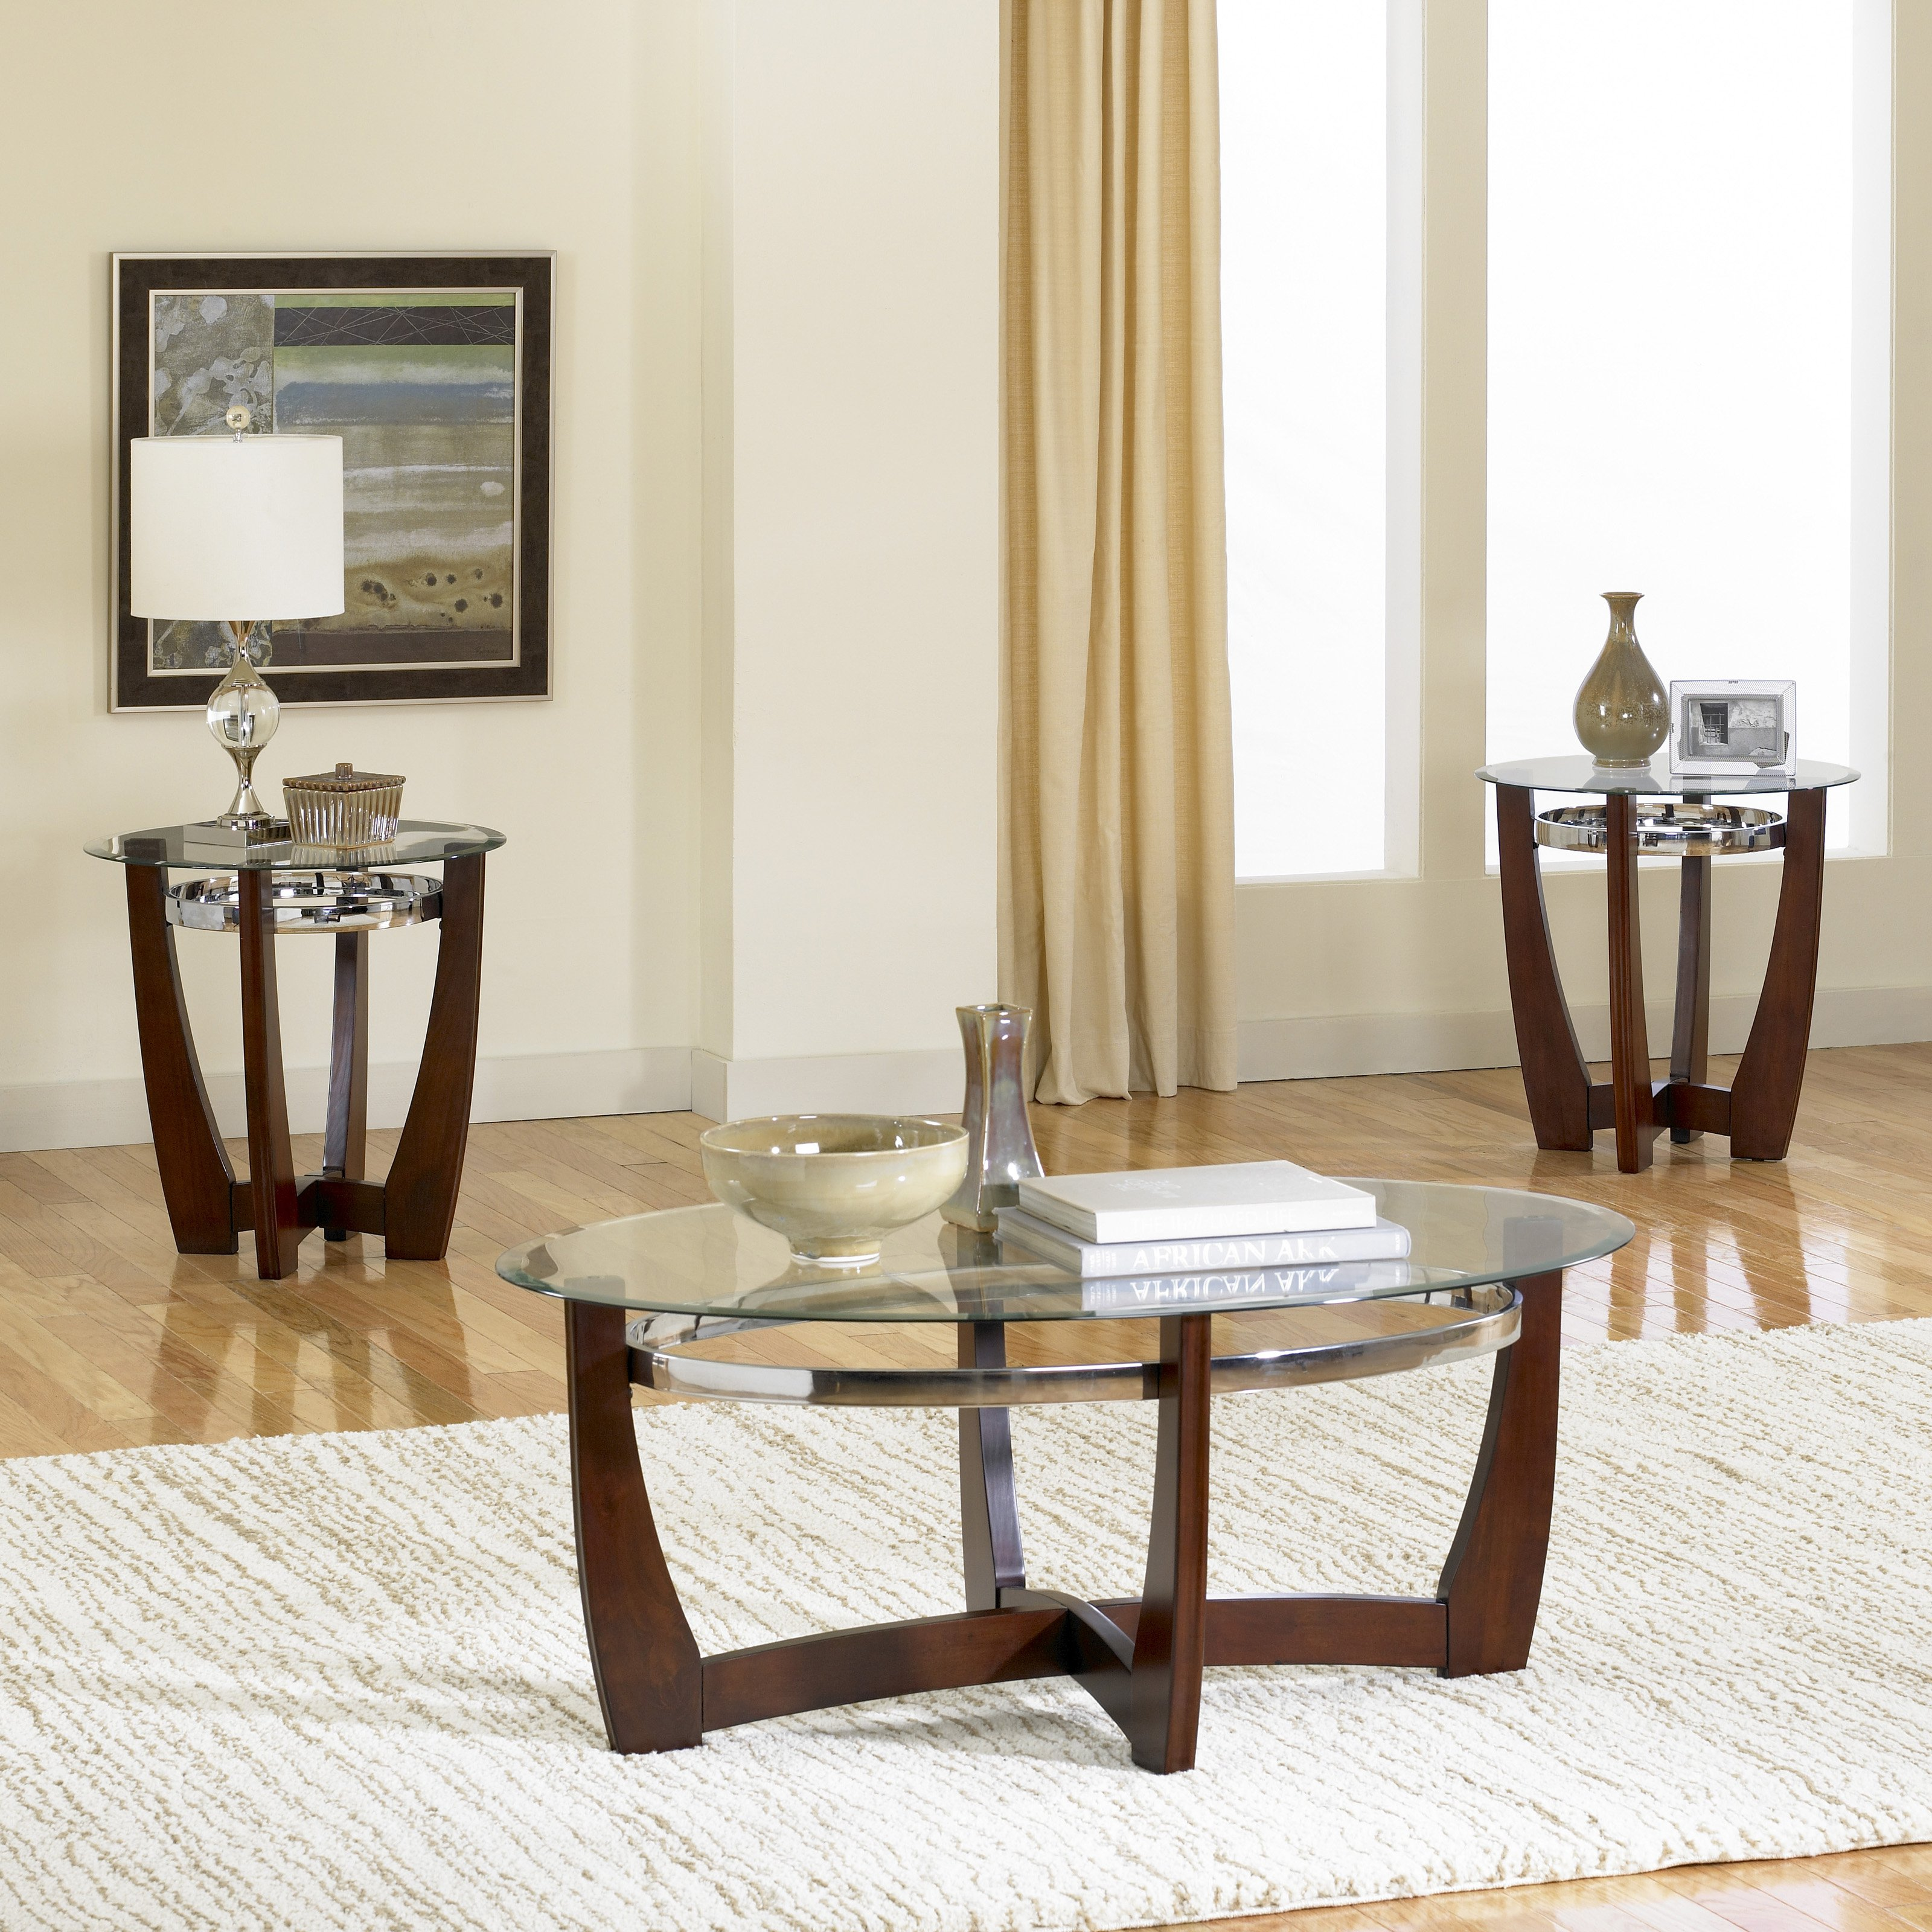 Coffee Table Set Of 3 Standard Furniture Apollo Oval Coffee Table With 2 End Tables